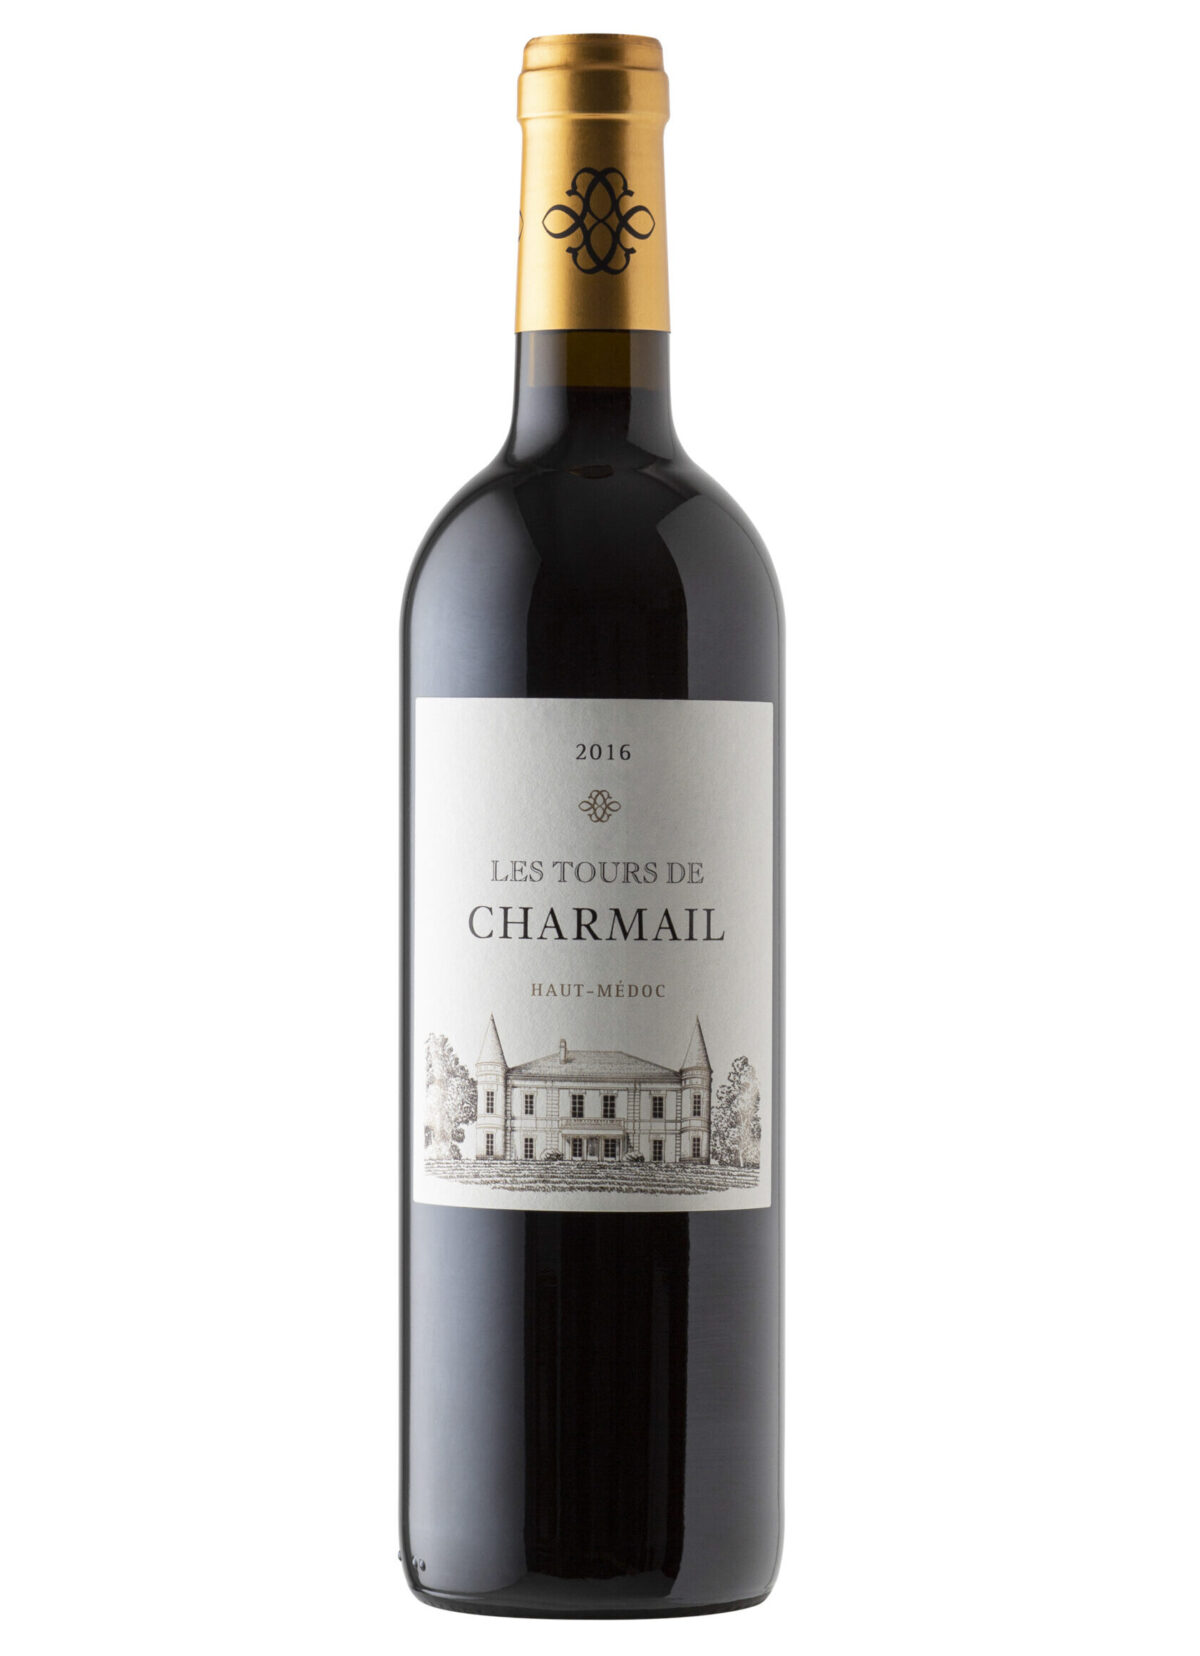 Les Tours de Charmail Haut-Medoc wine bottle.